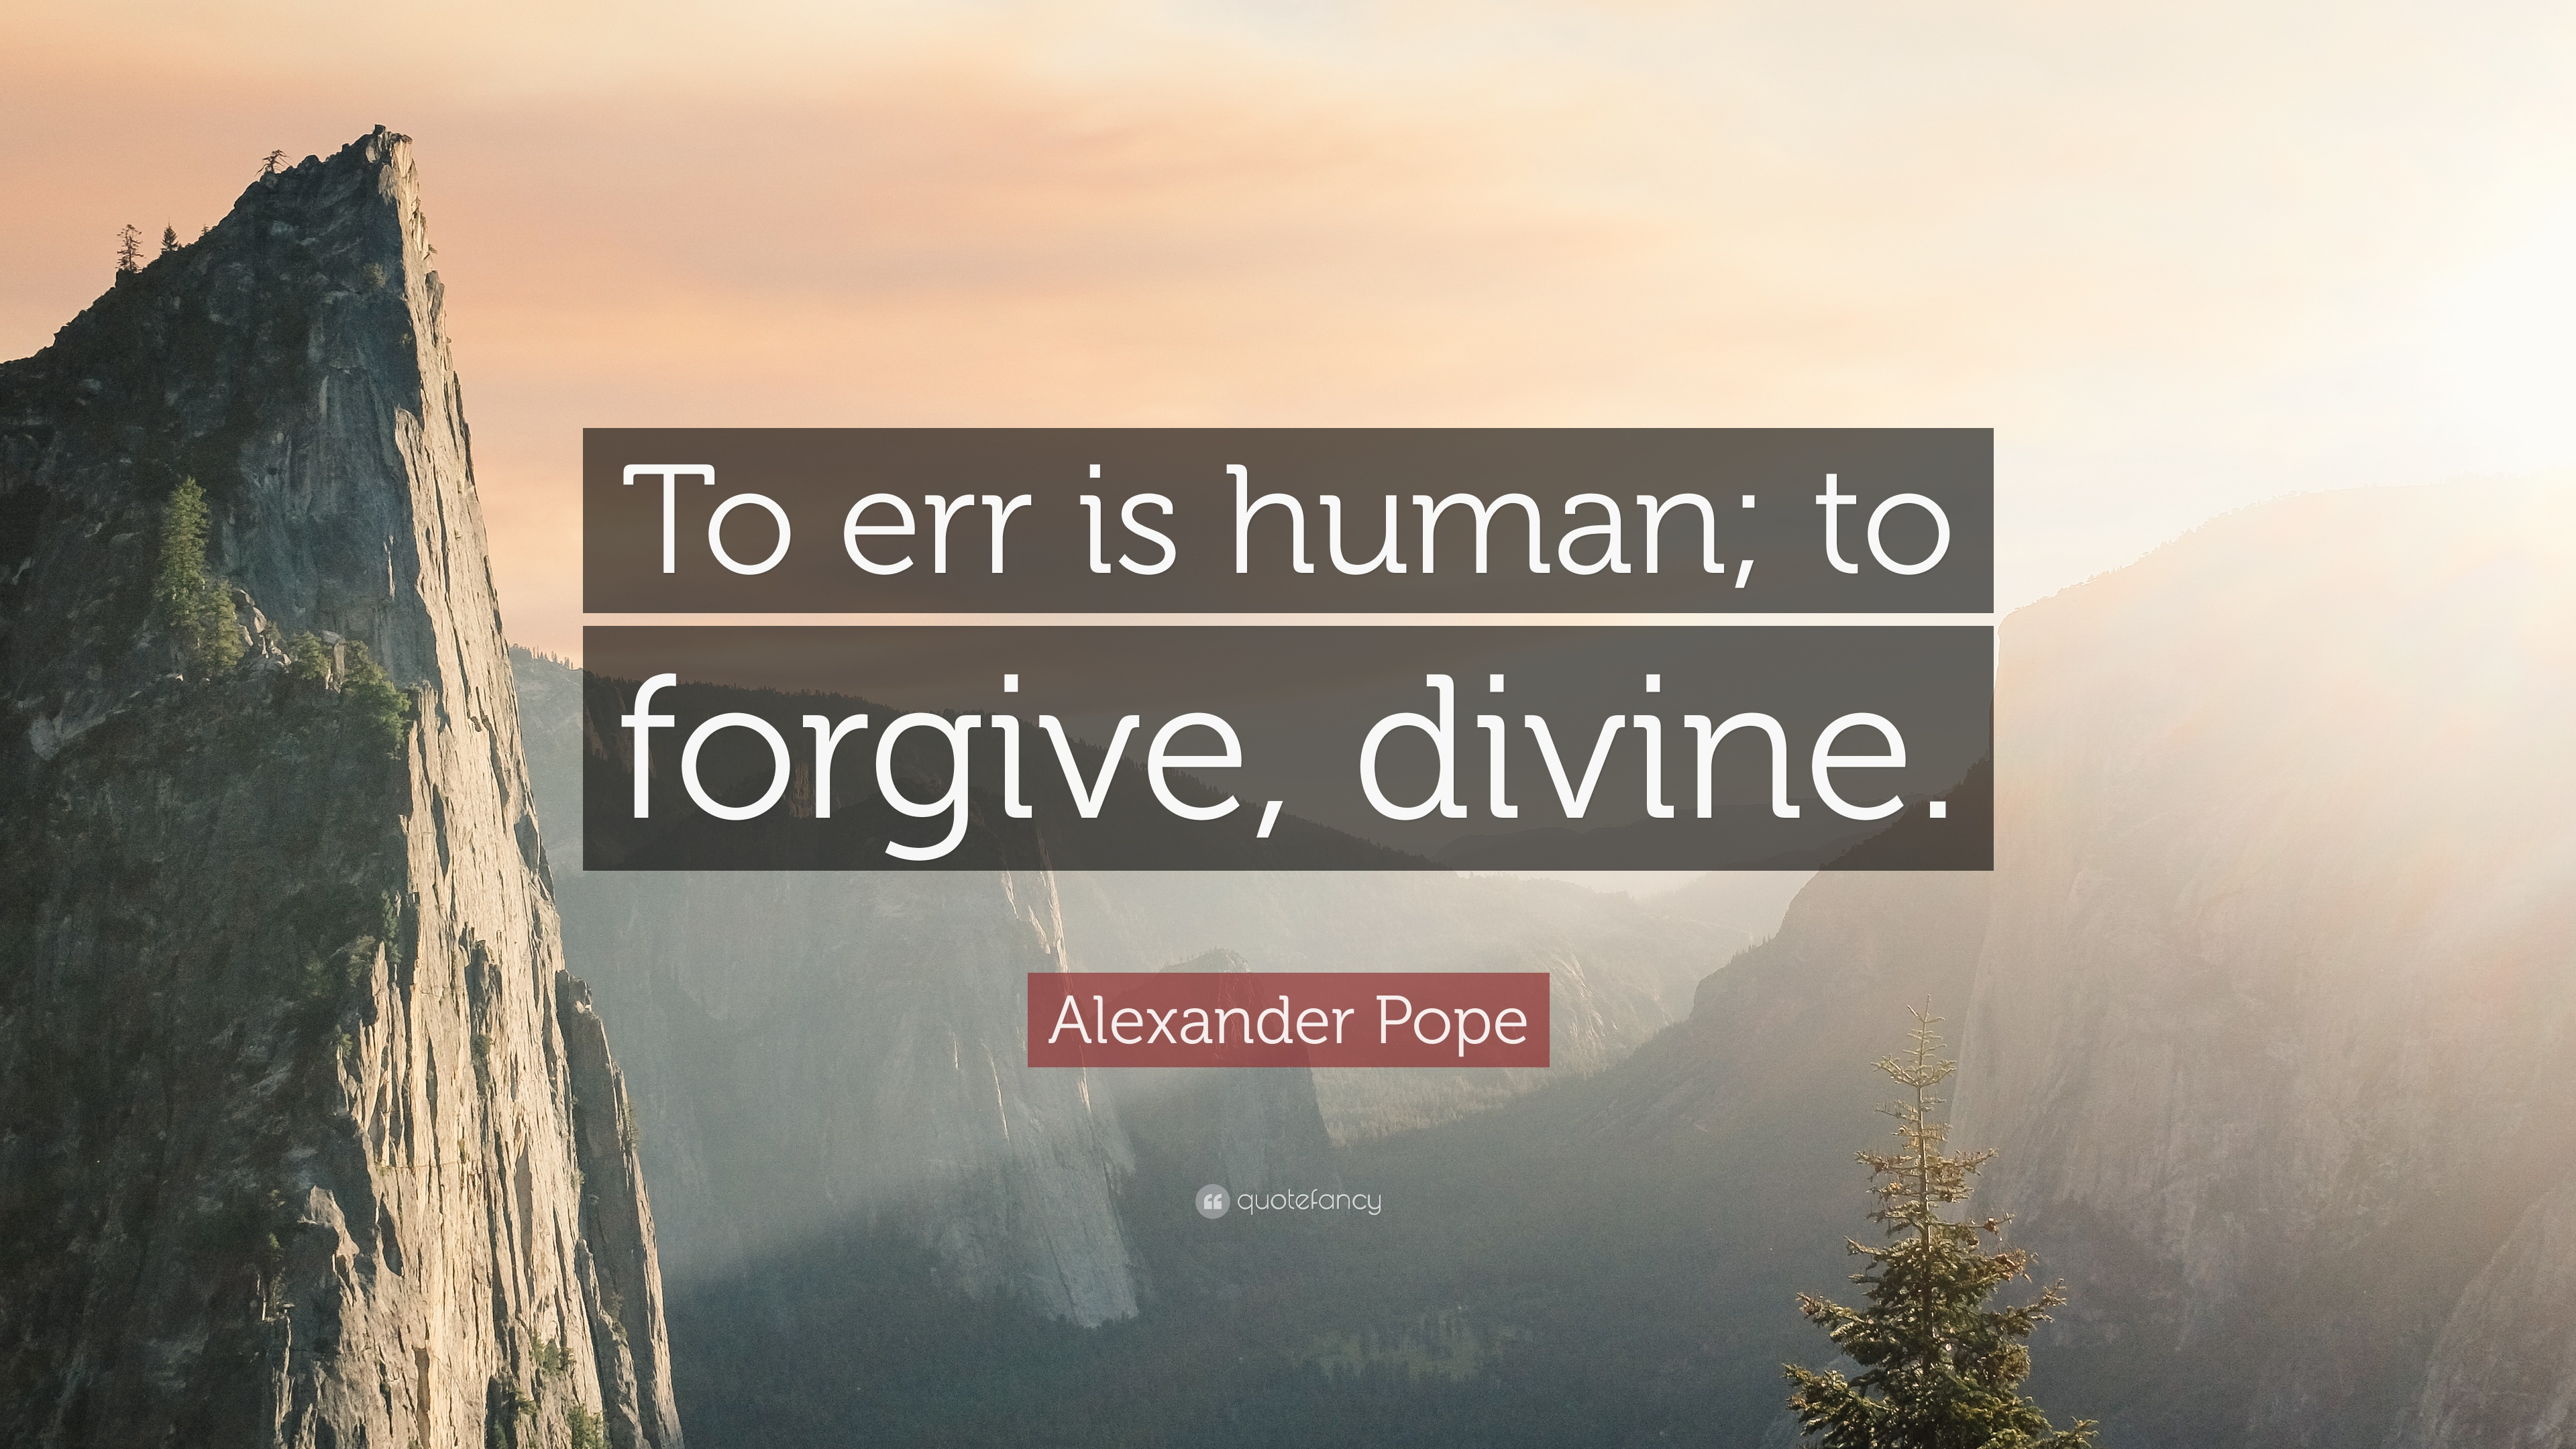 https://quotefancy.com/media/wallpaper/3840x2160/37683-Alexander-Pope-Quote-To-err-is-human-to-forgive-divine.jpg